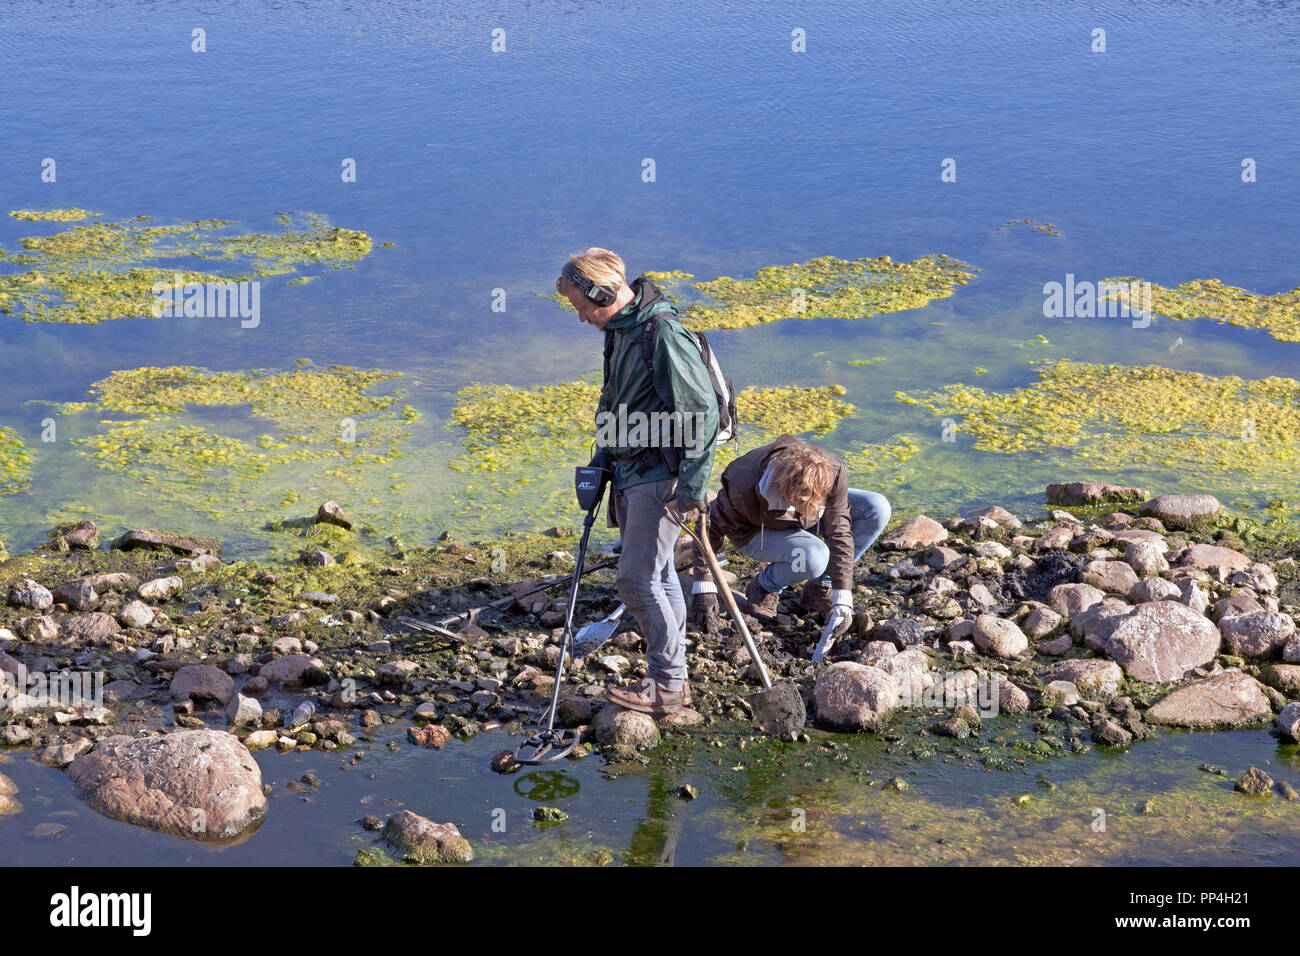 Two probably archaelogical find seekers with metal detectors in mud and extremely low water at the banks of Sortedam Lake in Copenhagen. - Stock Image